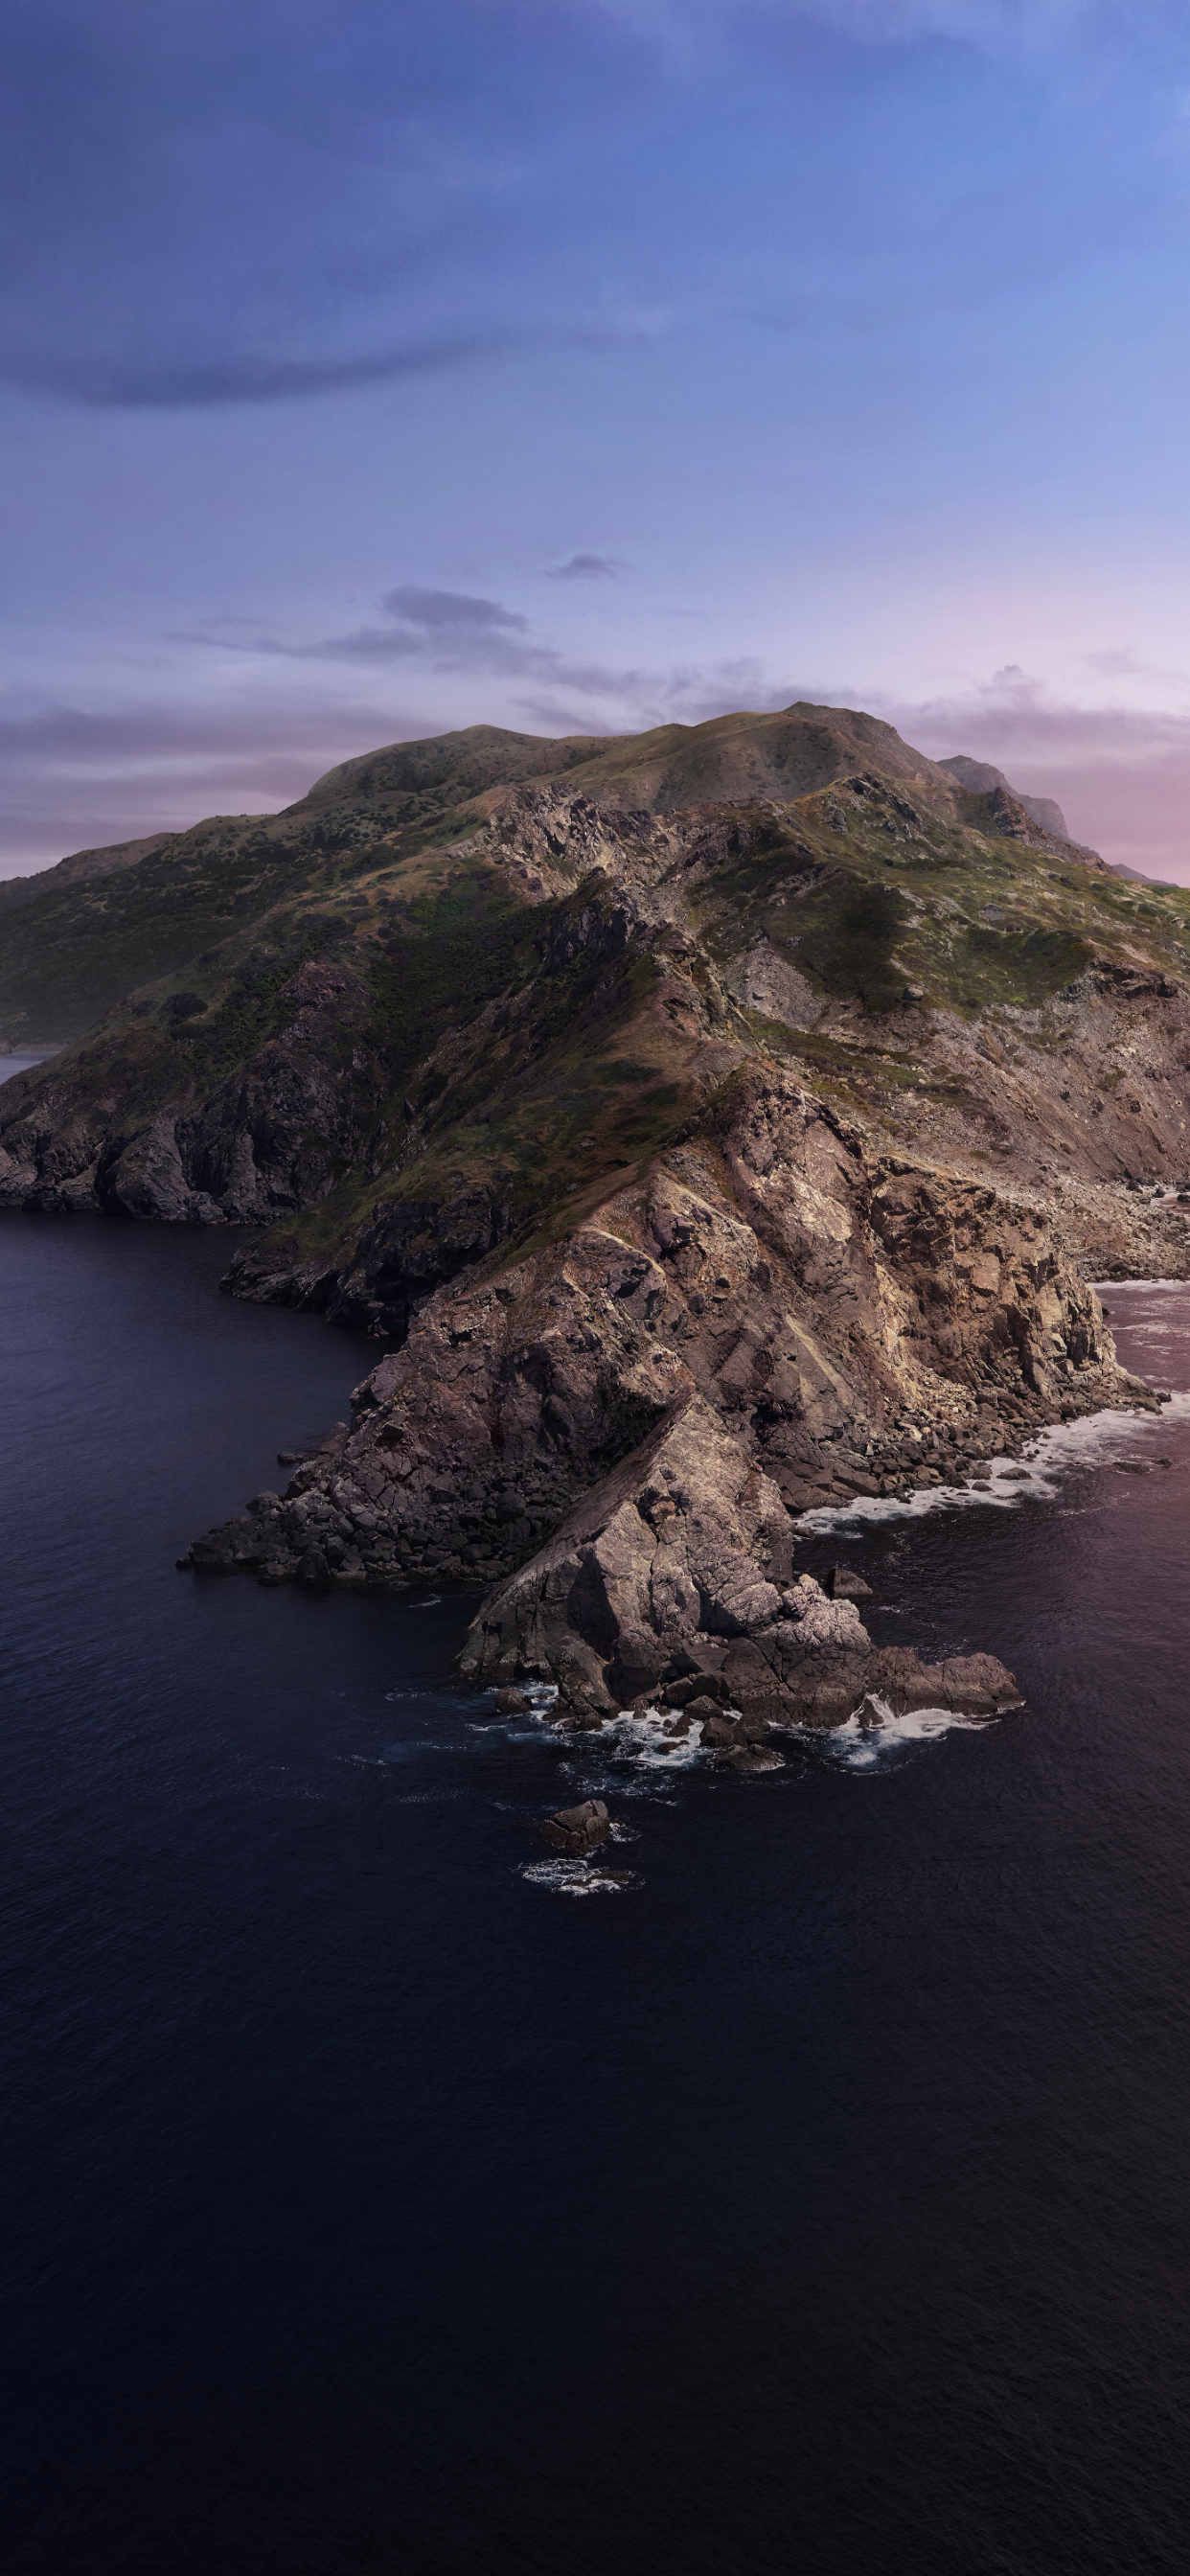 Macos Catalina Wallpaper For Iphone Zollotech